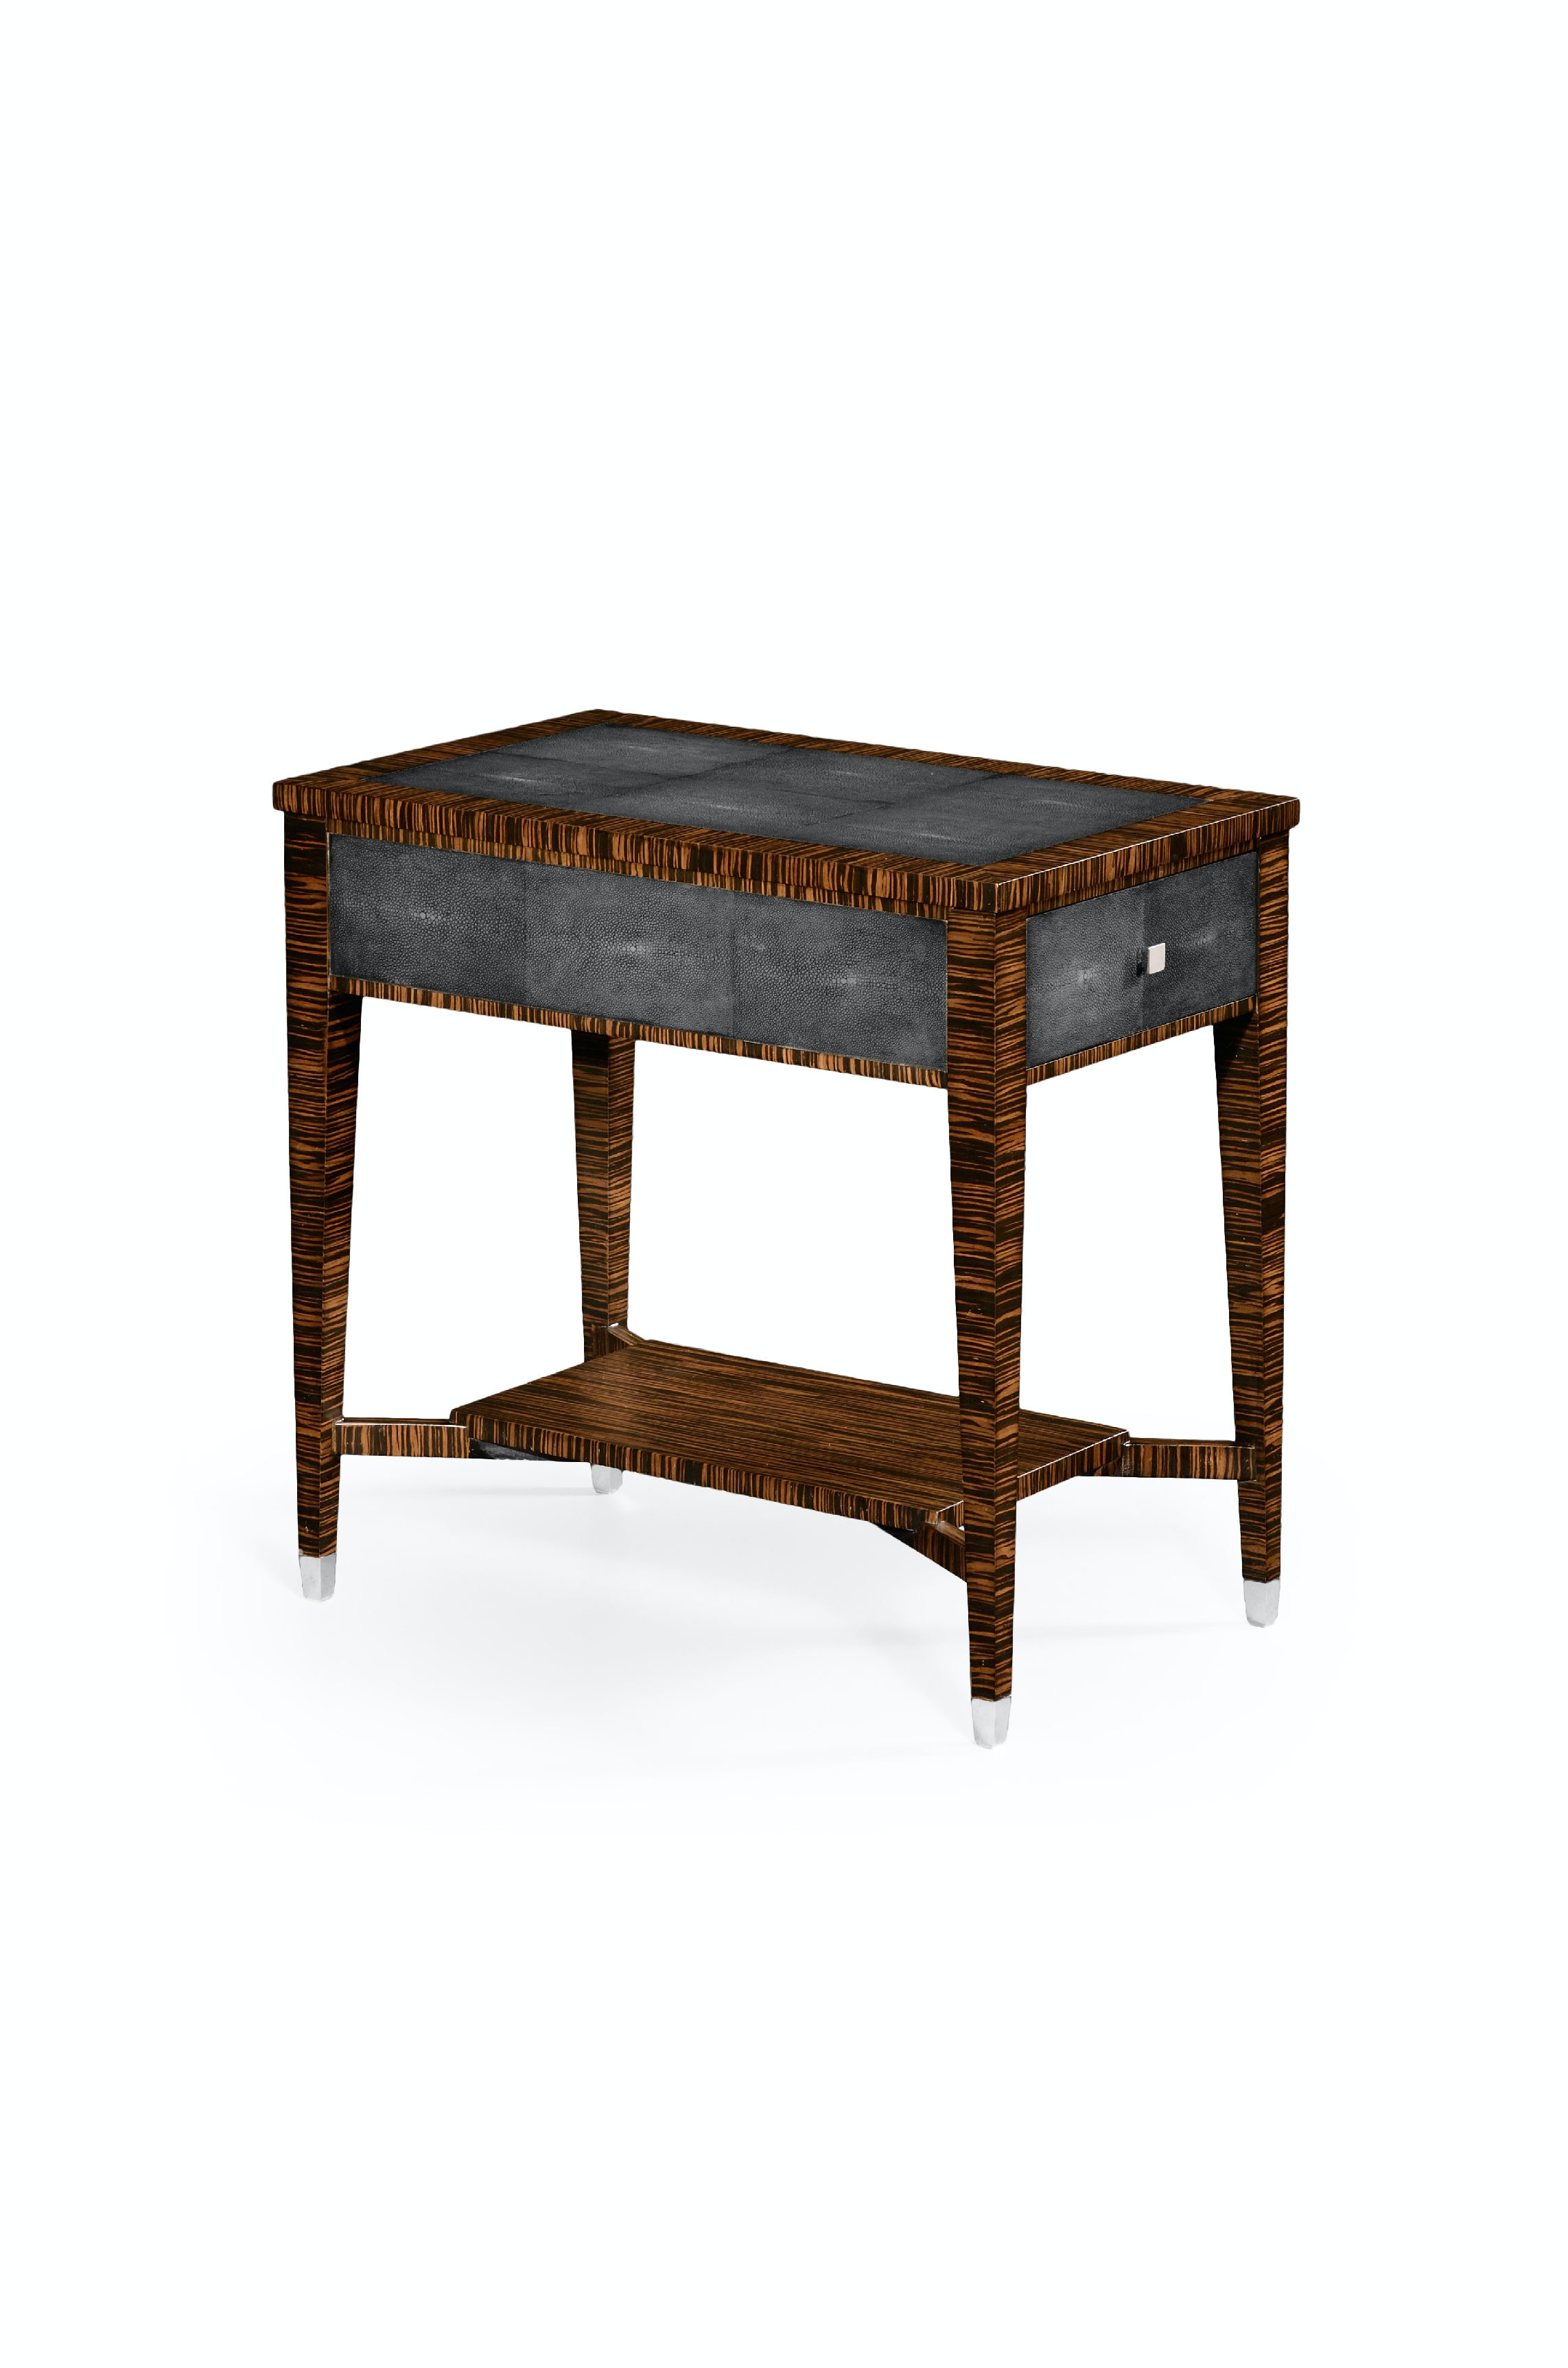 Merveilleux Jonathan Charles Faux Macassar Ebony U0026 Anthracite Shagreen Side Table  QJ494355MAS From Walter E. Smithe